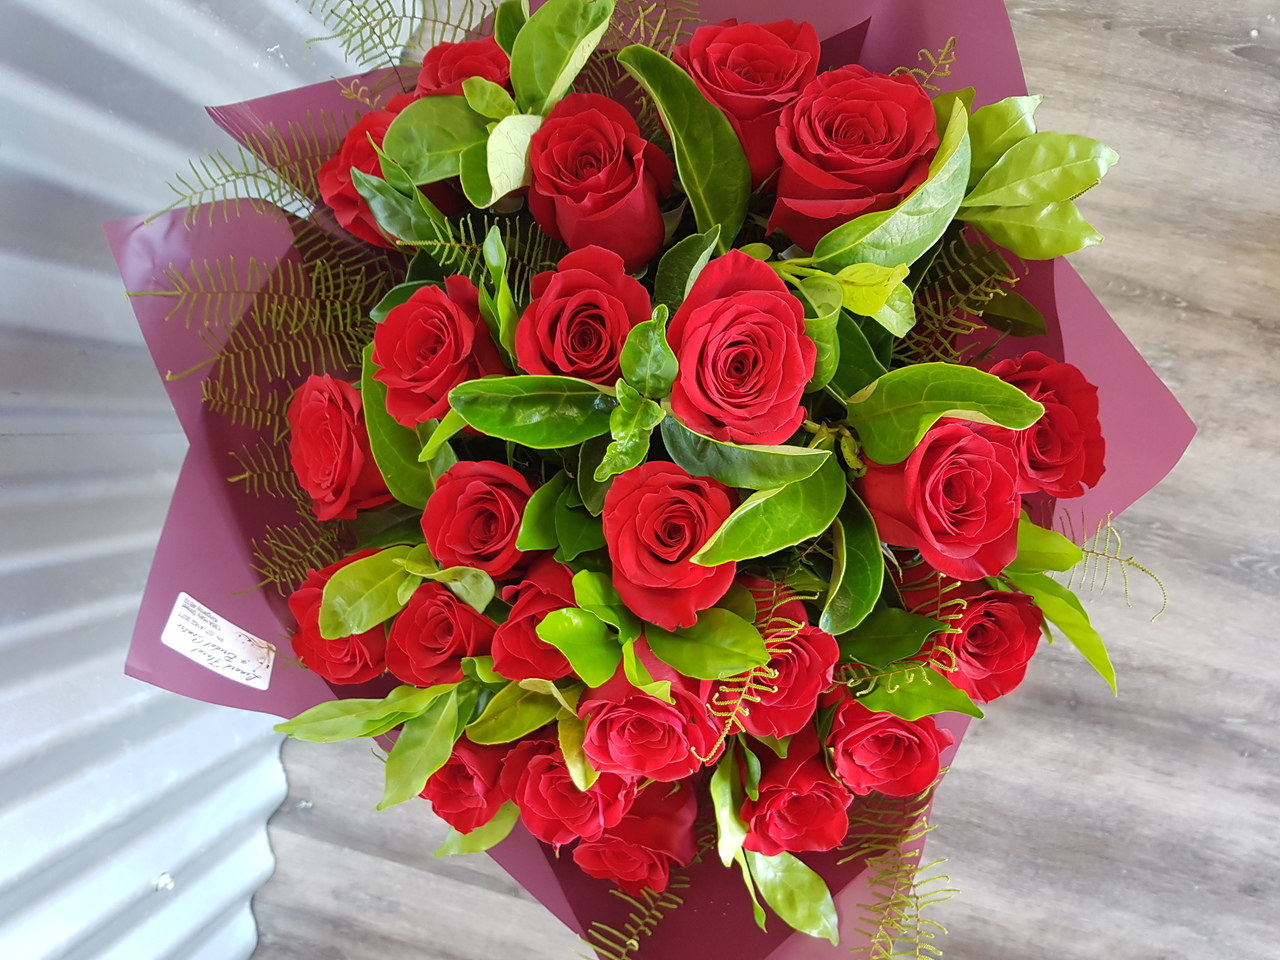 STUNNING RED ROSE BOUQUET - 25 ROSES AND GREENERY